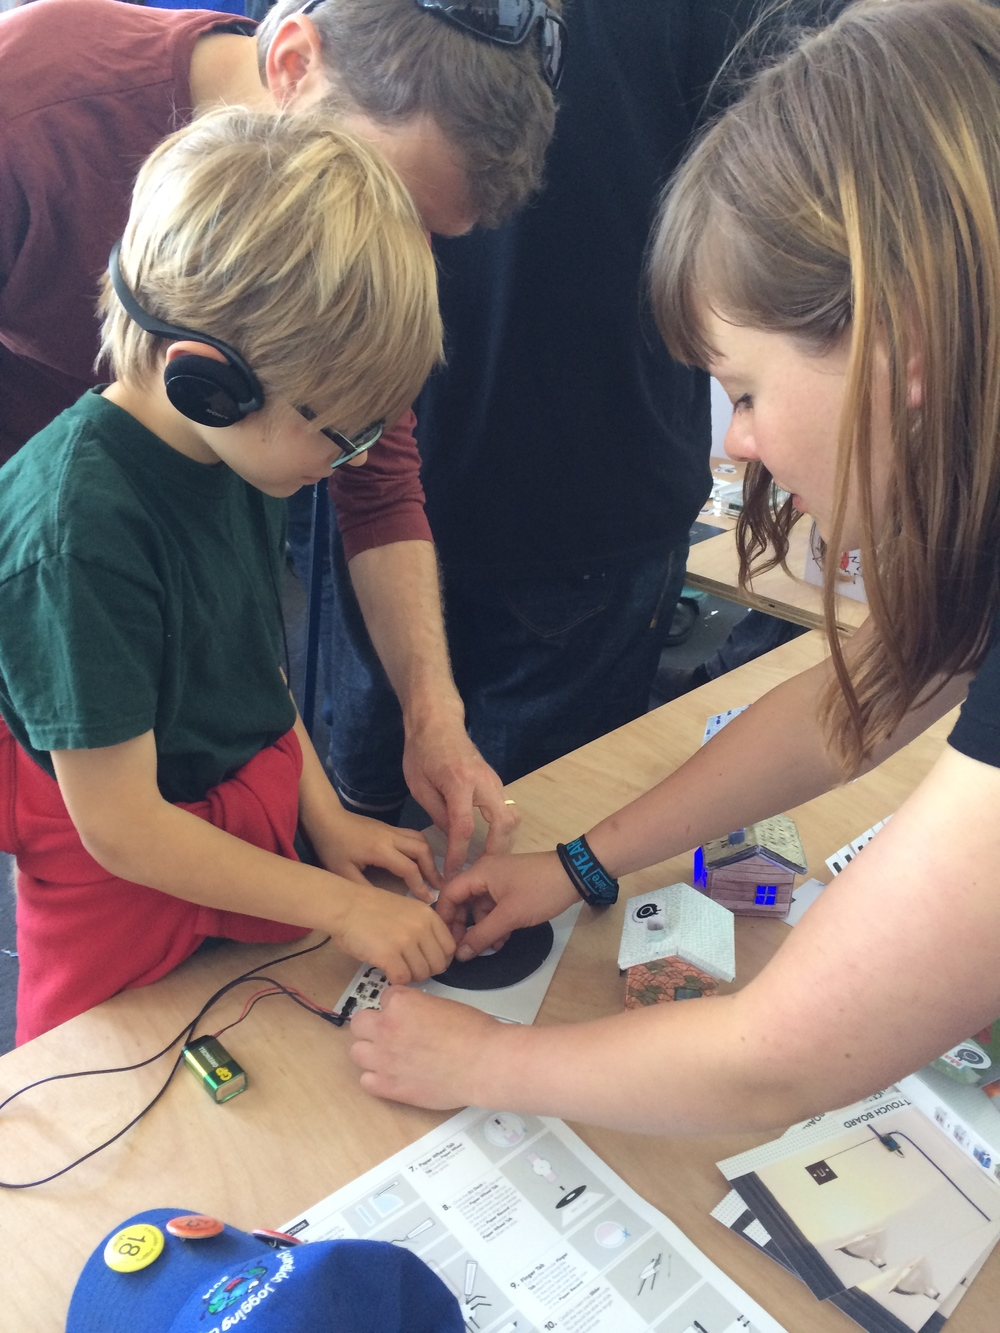 Grace from Bare Conductive helped Elliot do some mixology on a paper DIY turntable